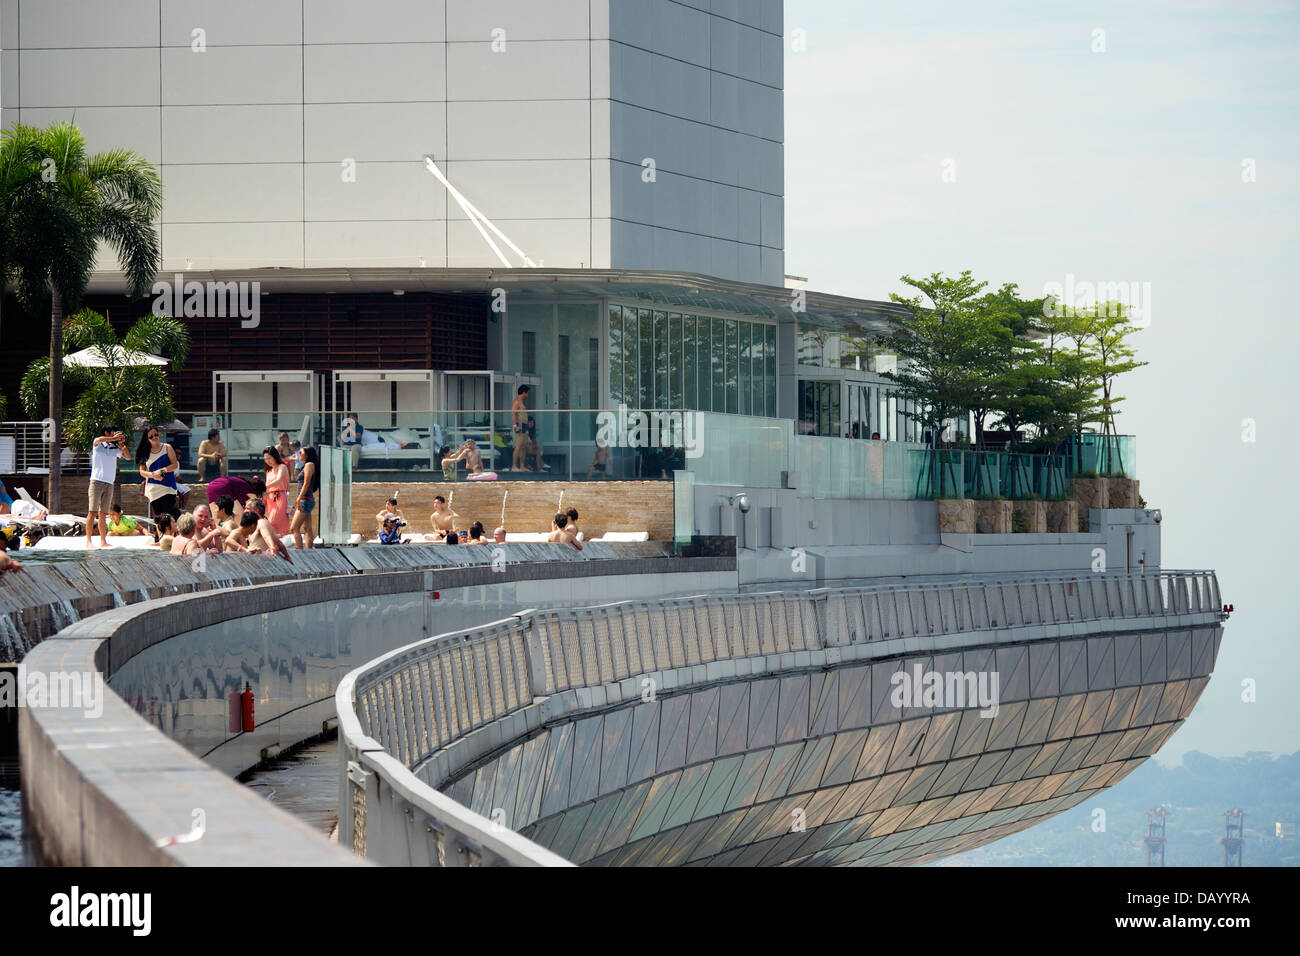 People relaxing at Marina Bay Sands Infinity Pool - Stock Image